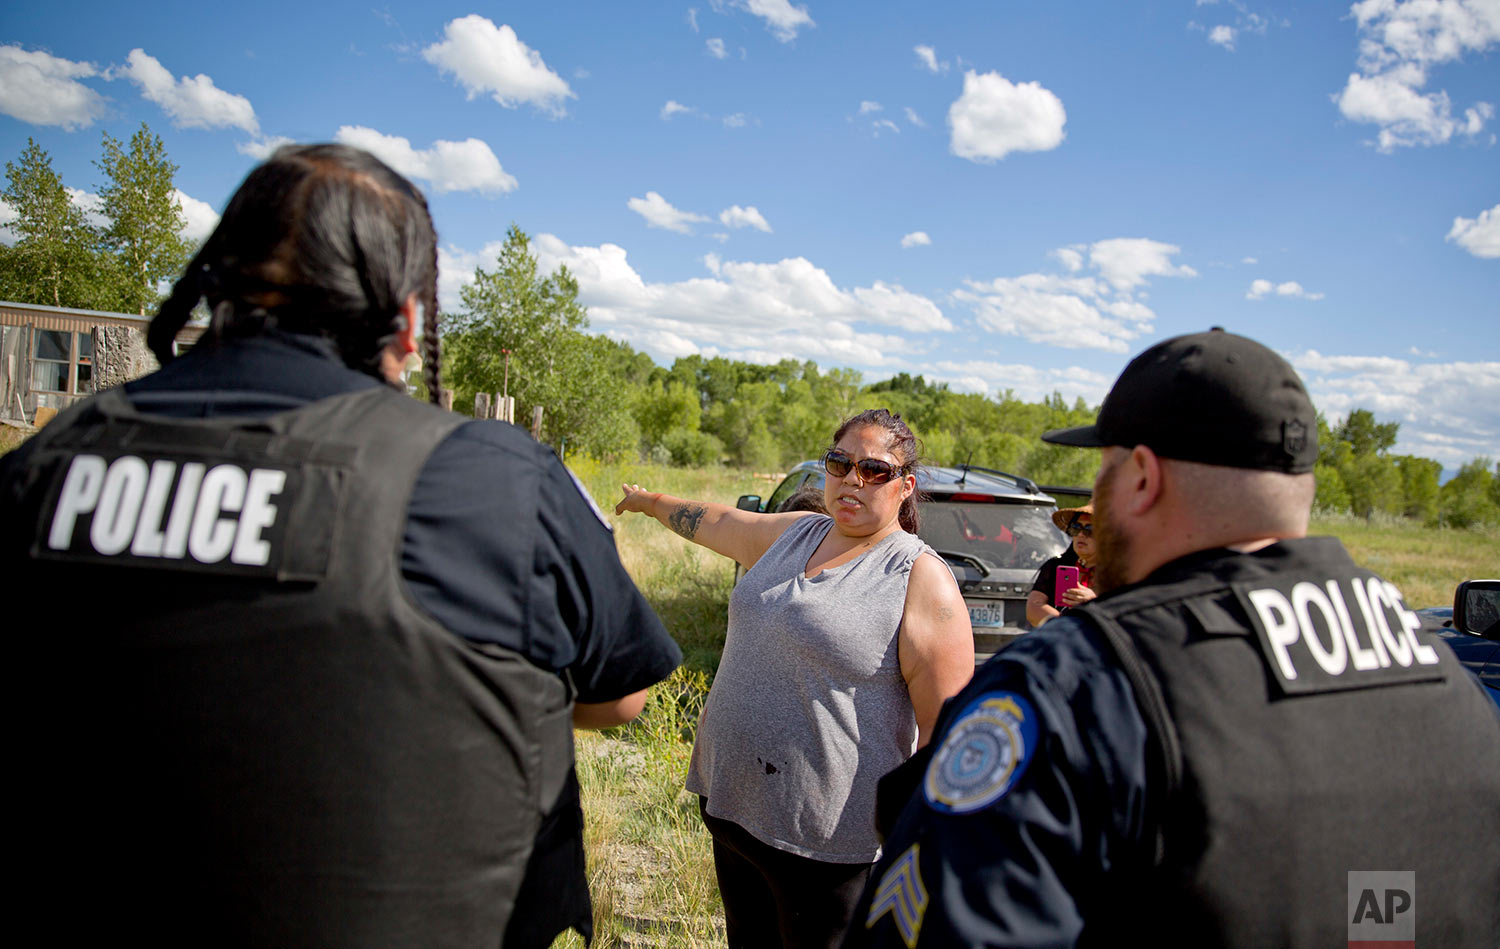 Lissa Loring points Blackfeet law enforcement officers to a trailer in Valier, Mont., where she believes clues have been found during a search for her cousin, Ashley HeavyRunner Loring, July 11, 2018. (AP Photo/David Goldman)